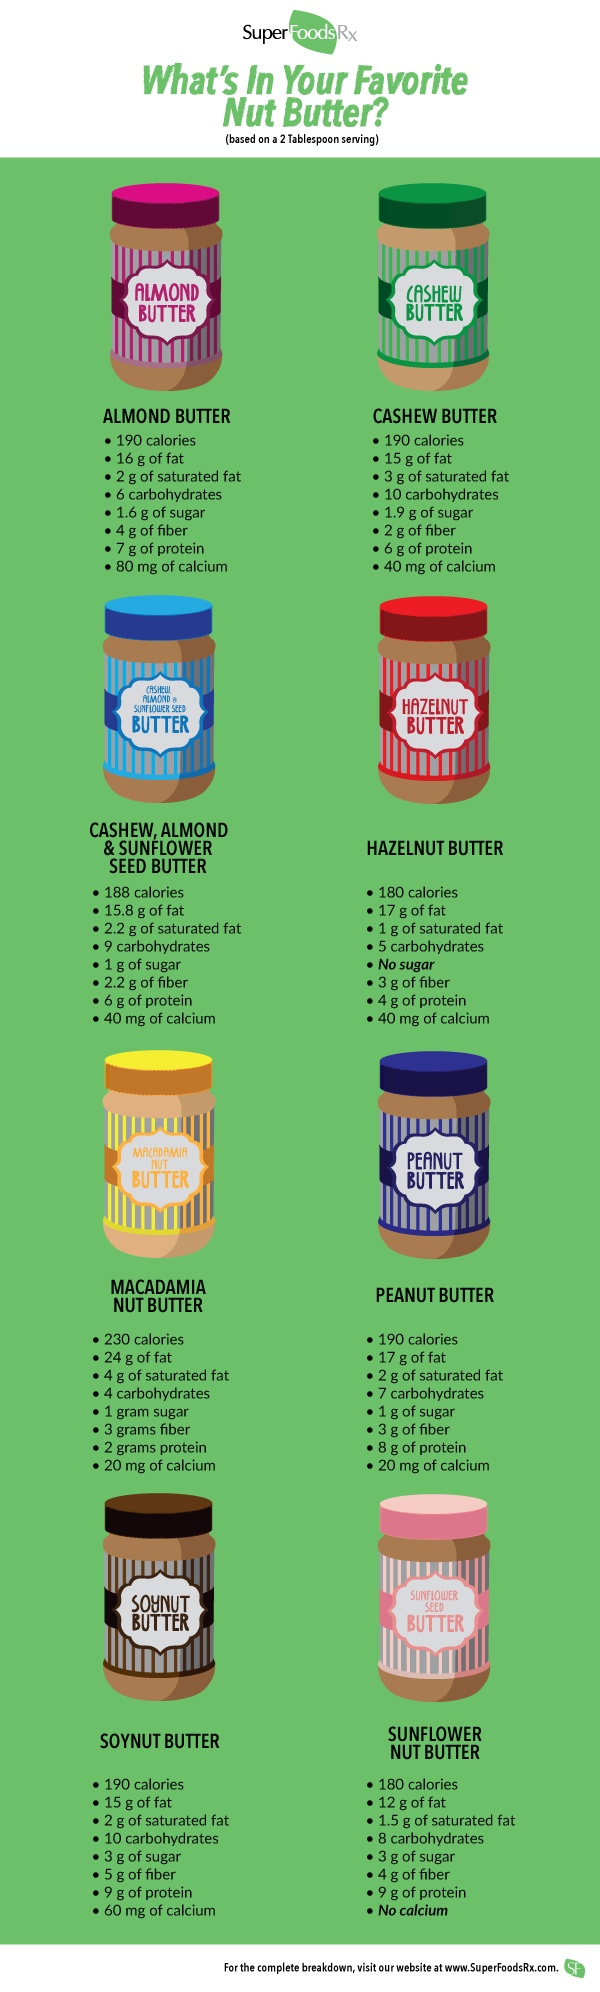 What's in Your Favorite Nut Butter? See a Comparison of Peanut, Almond, Cashew, and Other Top Nut Butters